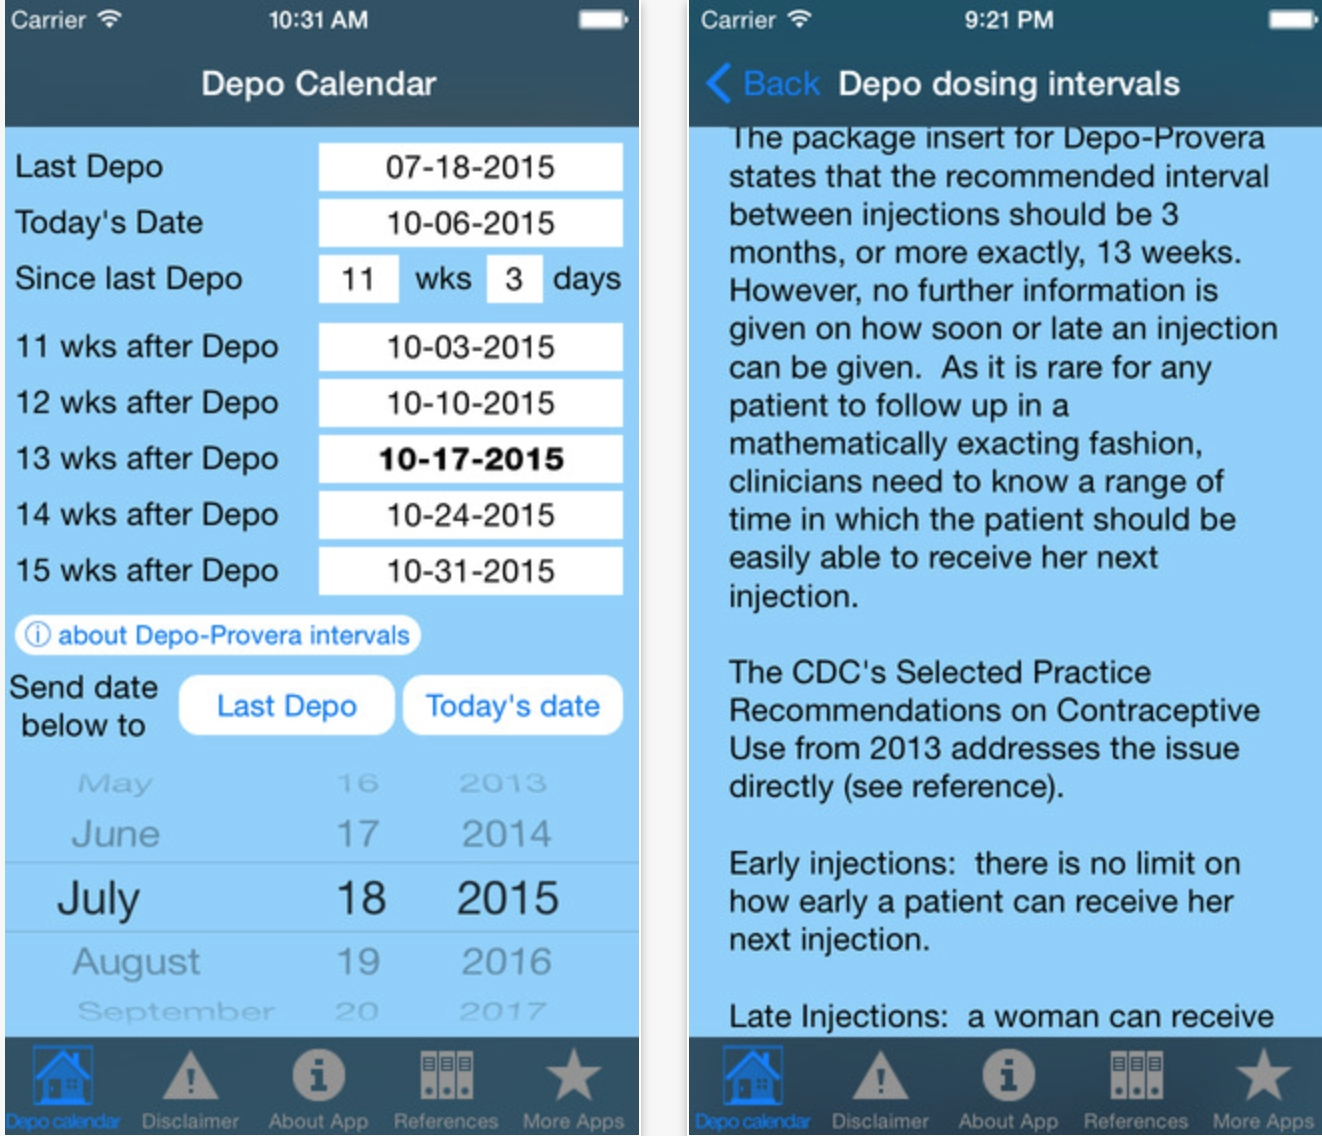 Depo Calendar App Could Significantly Improve Contraception  Depo Provera Injection Schedule